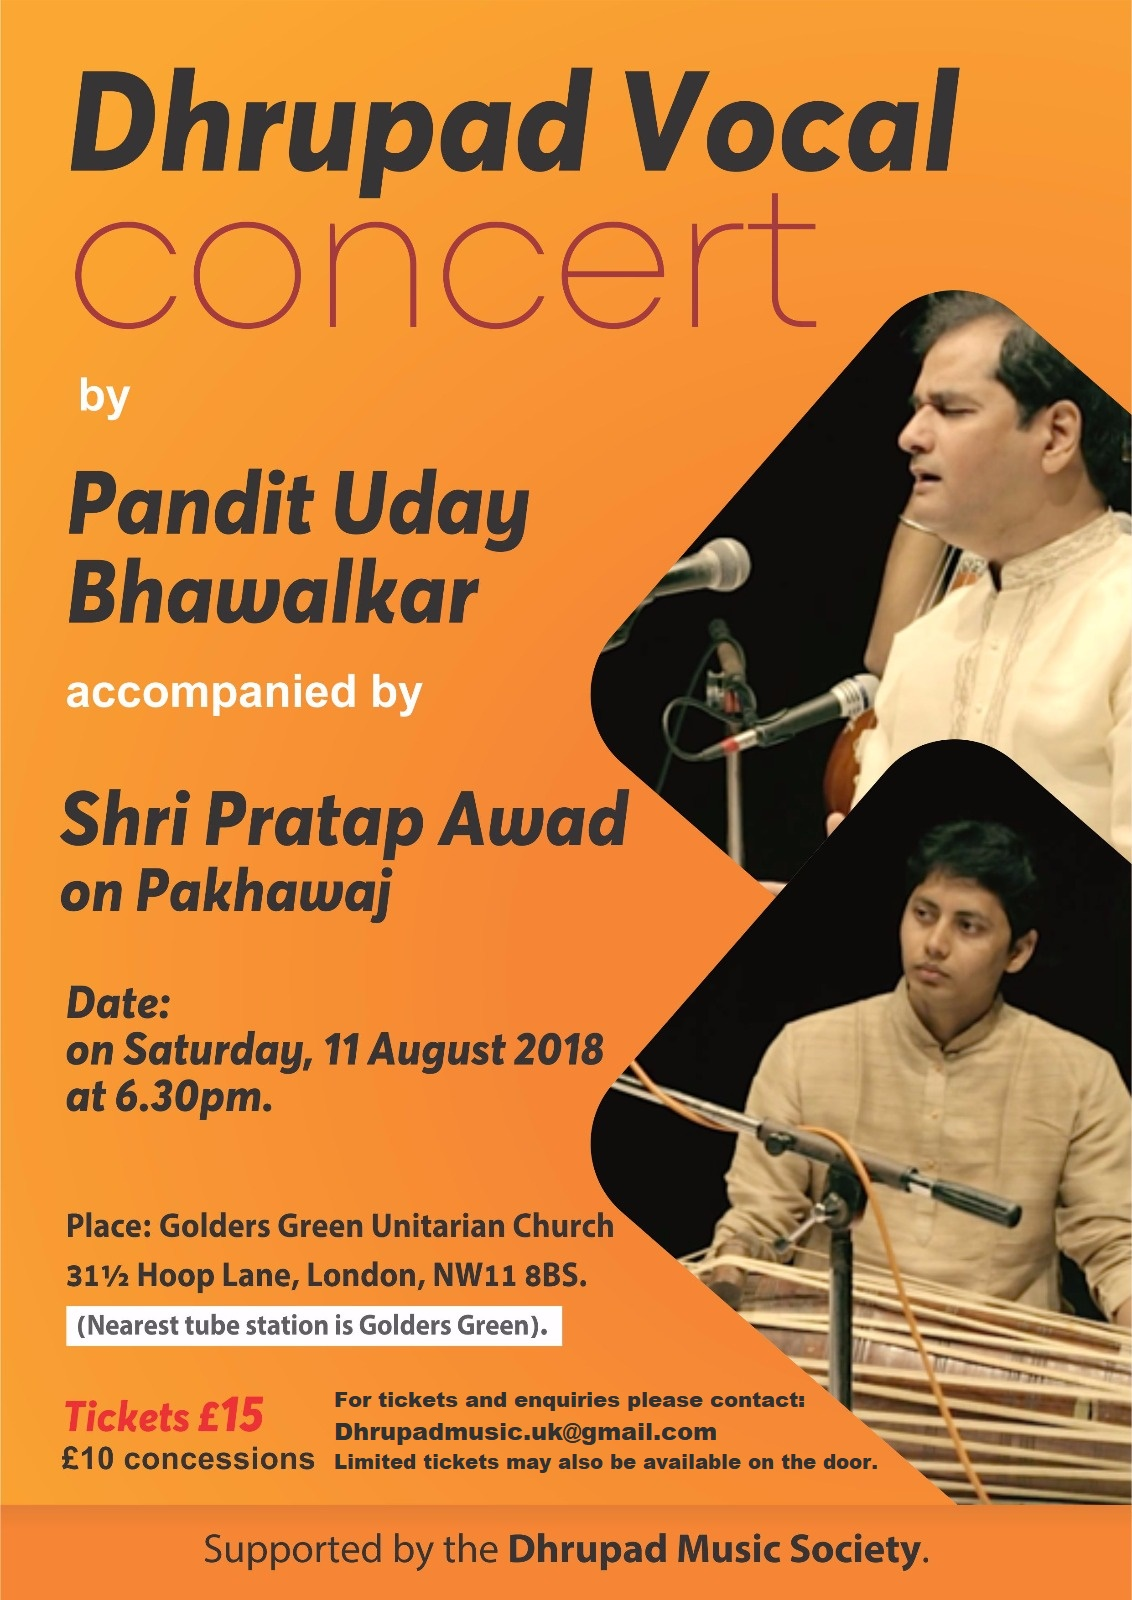 DhrupadconcertUdayji 110818 London.jpg